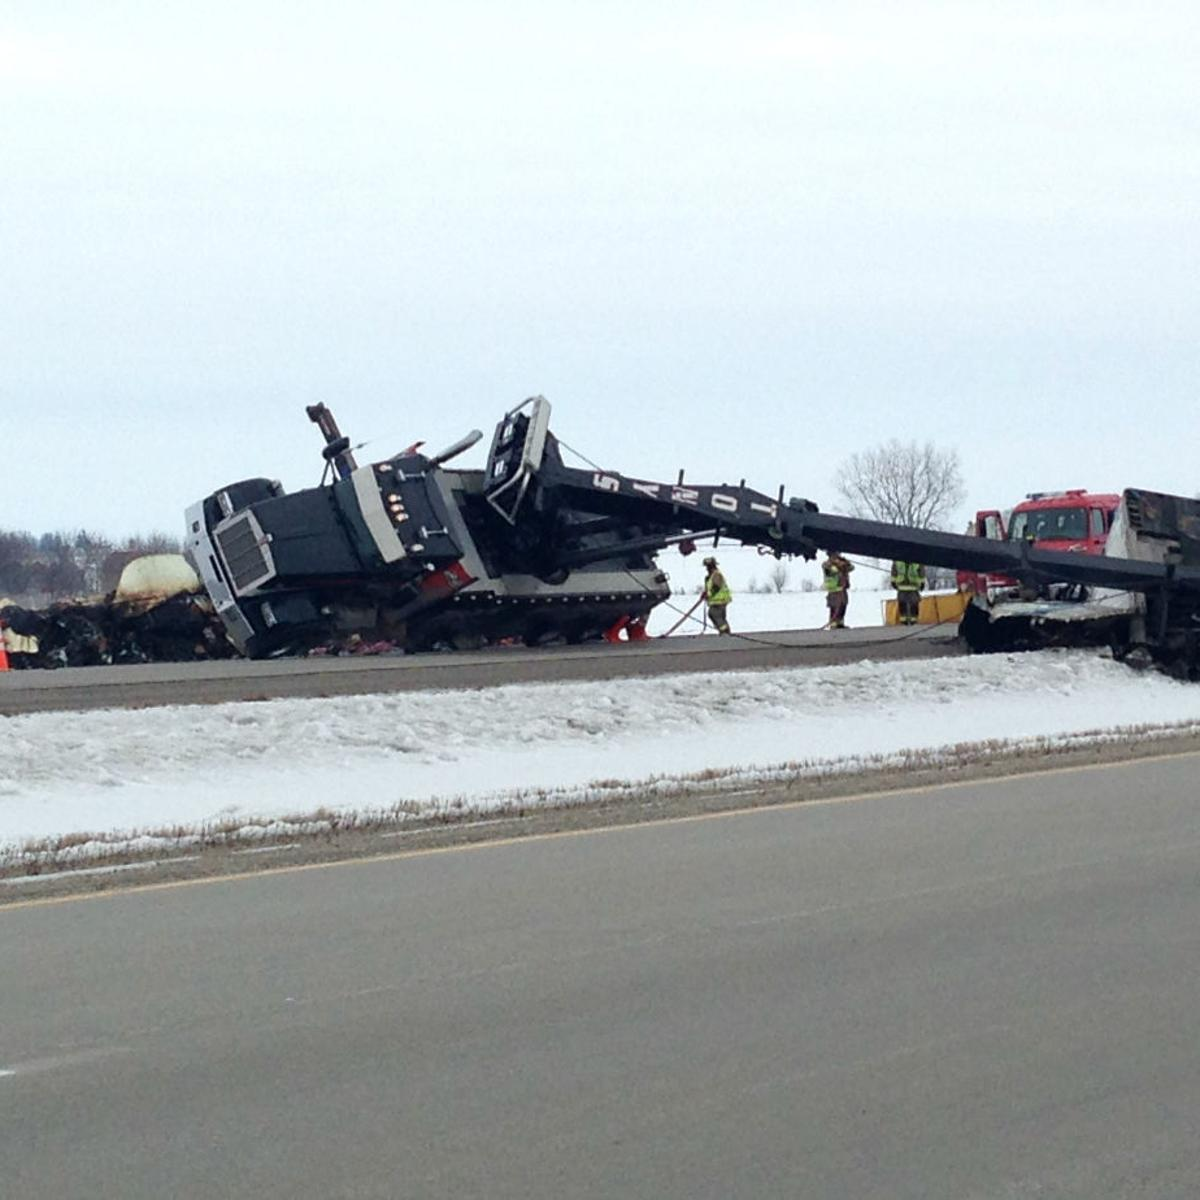 Highway 18 re-opens after hours-long closure near Mason City